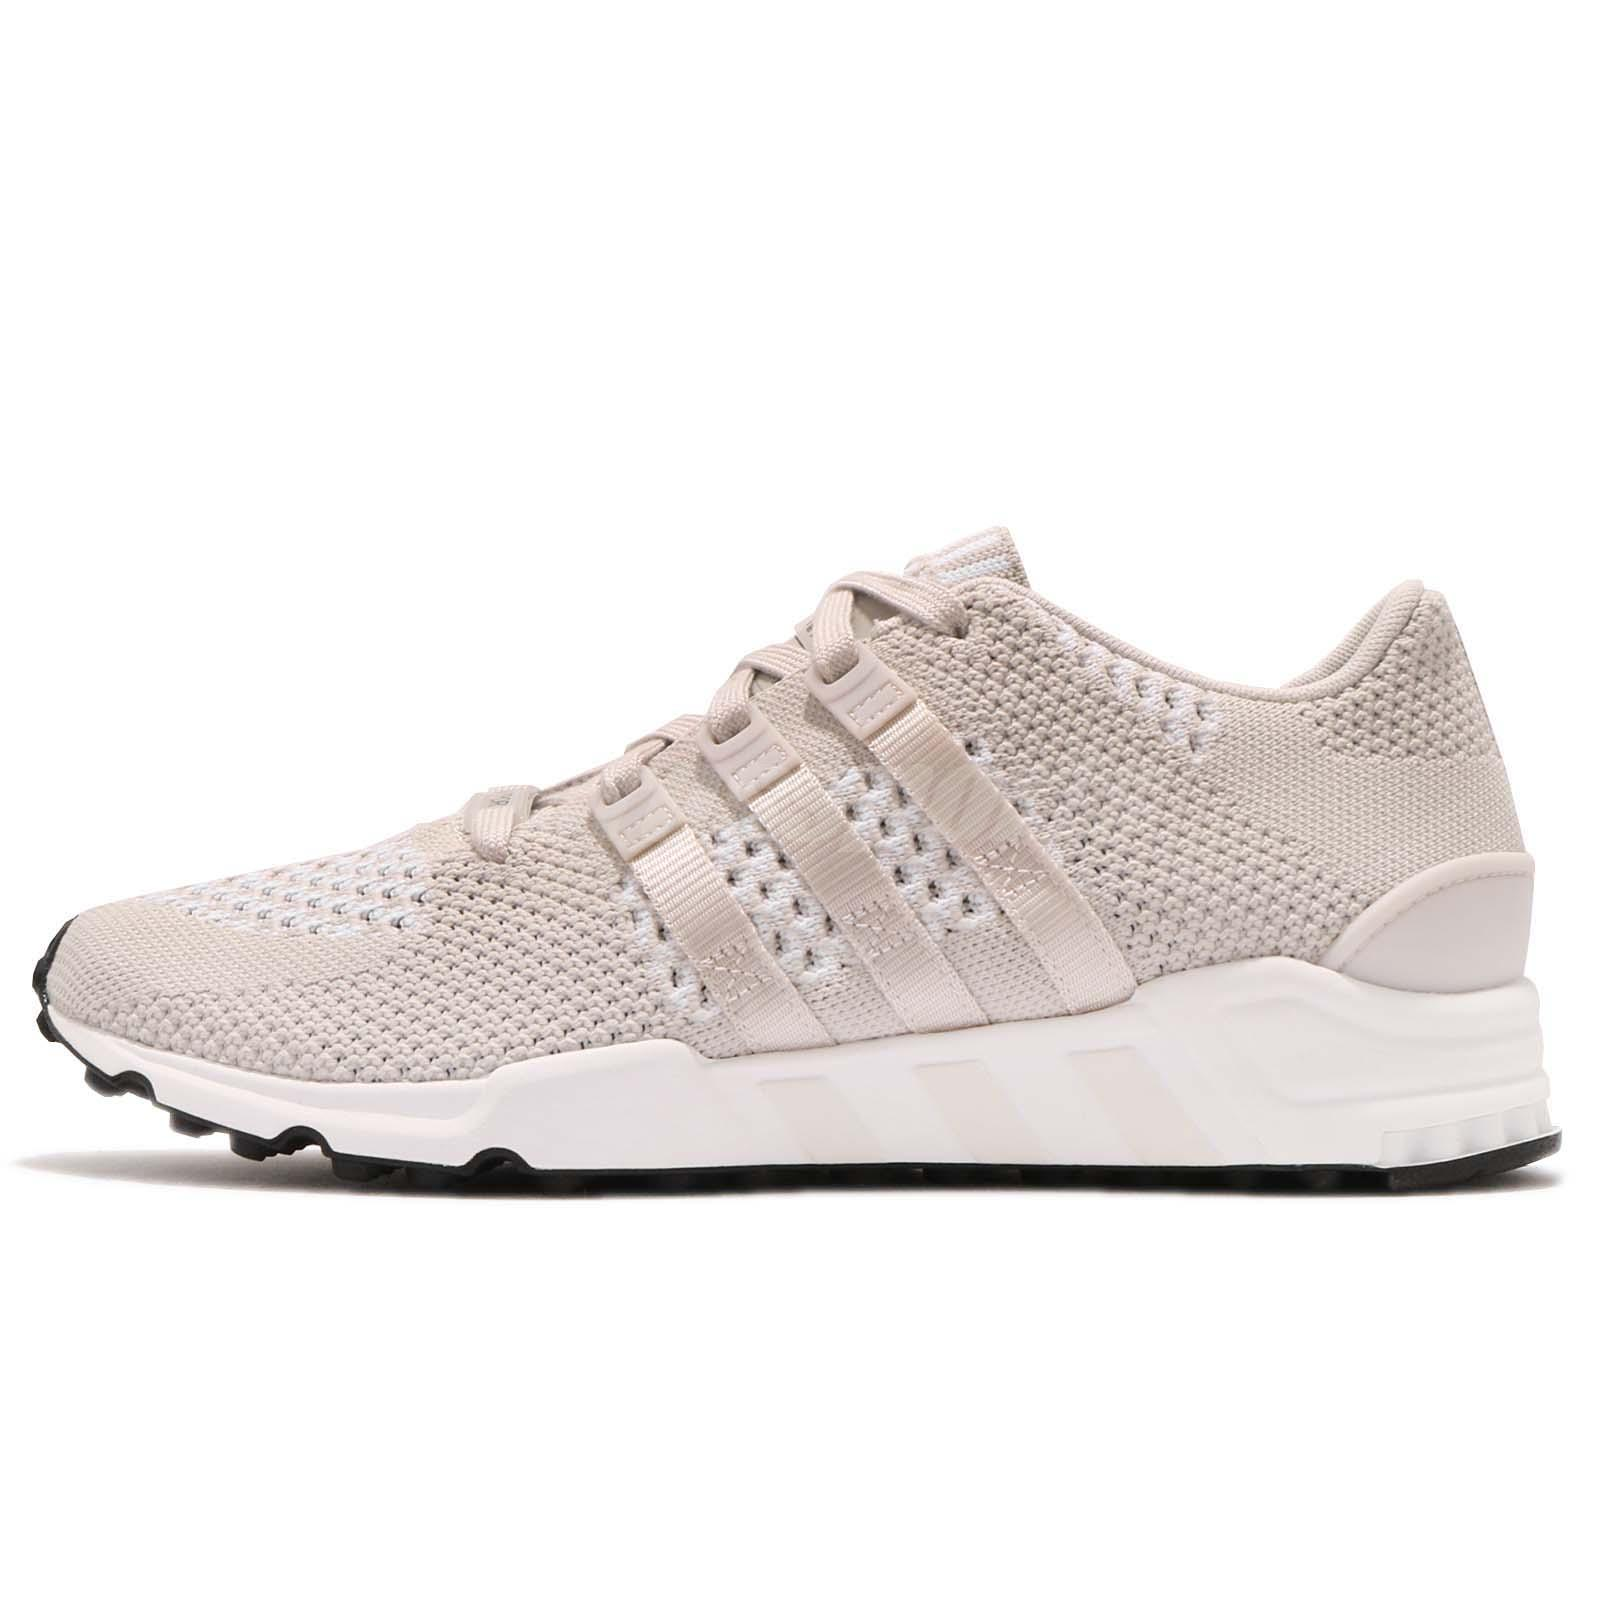 check out 2d6ef 5ca58 adidas EQT Support RF PK Equipment Primeknit Pearl Grey White Men Shoes  BY9604